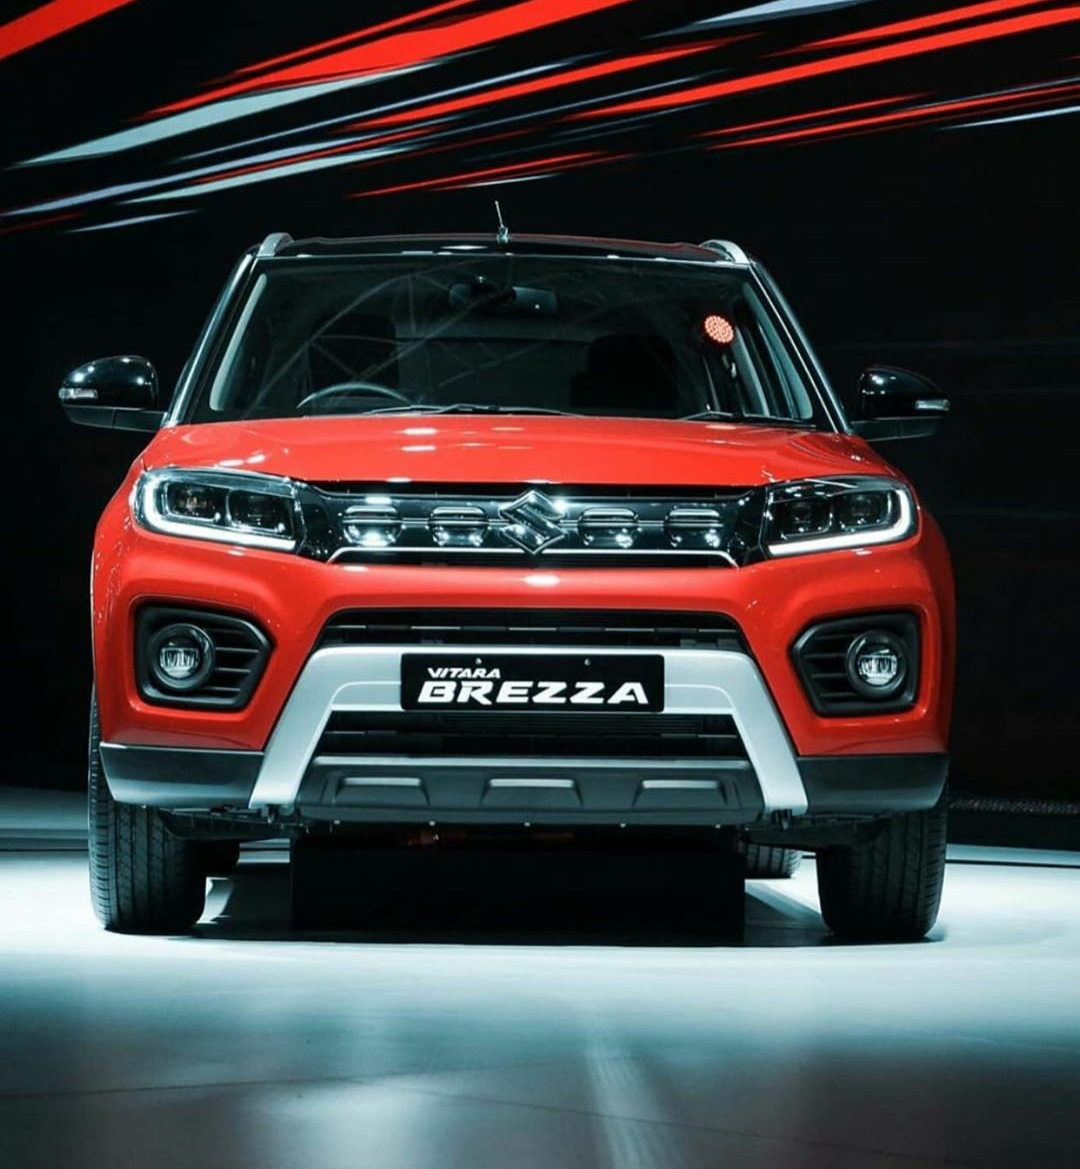 All-New Vitara Brezza Equipped with Dual function LED DRLs